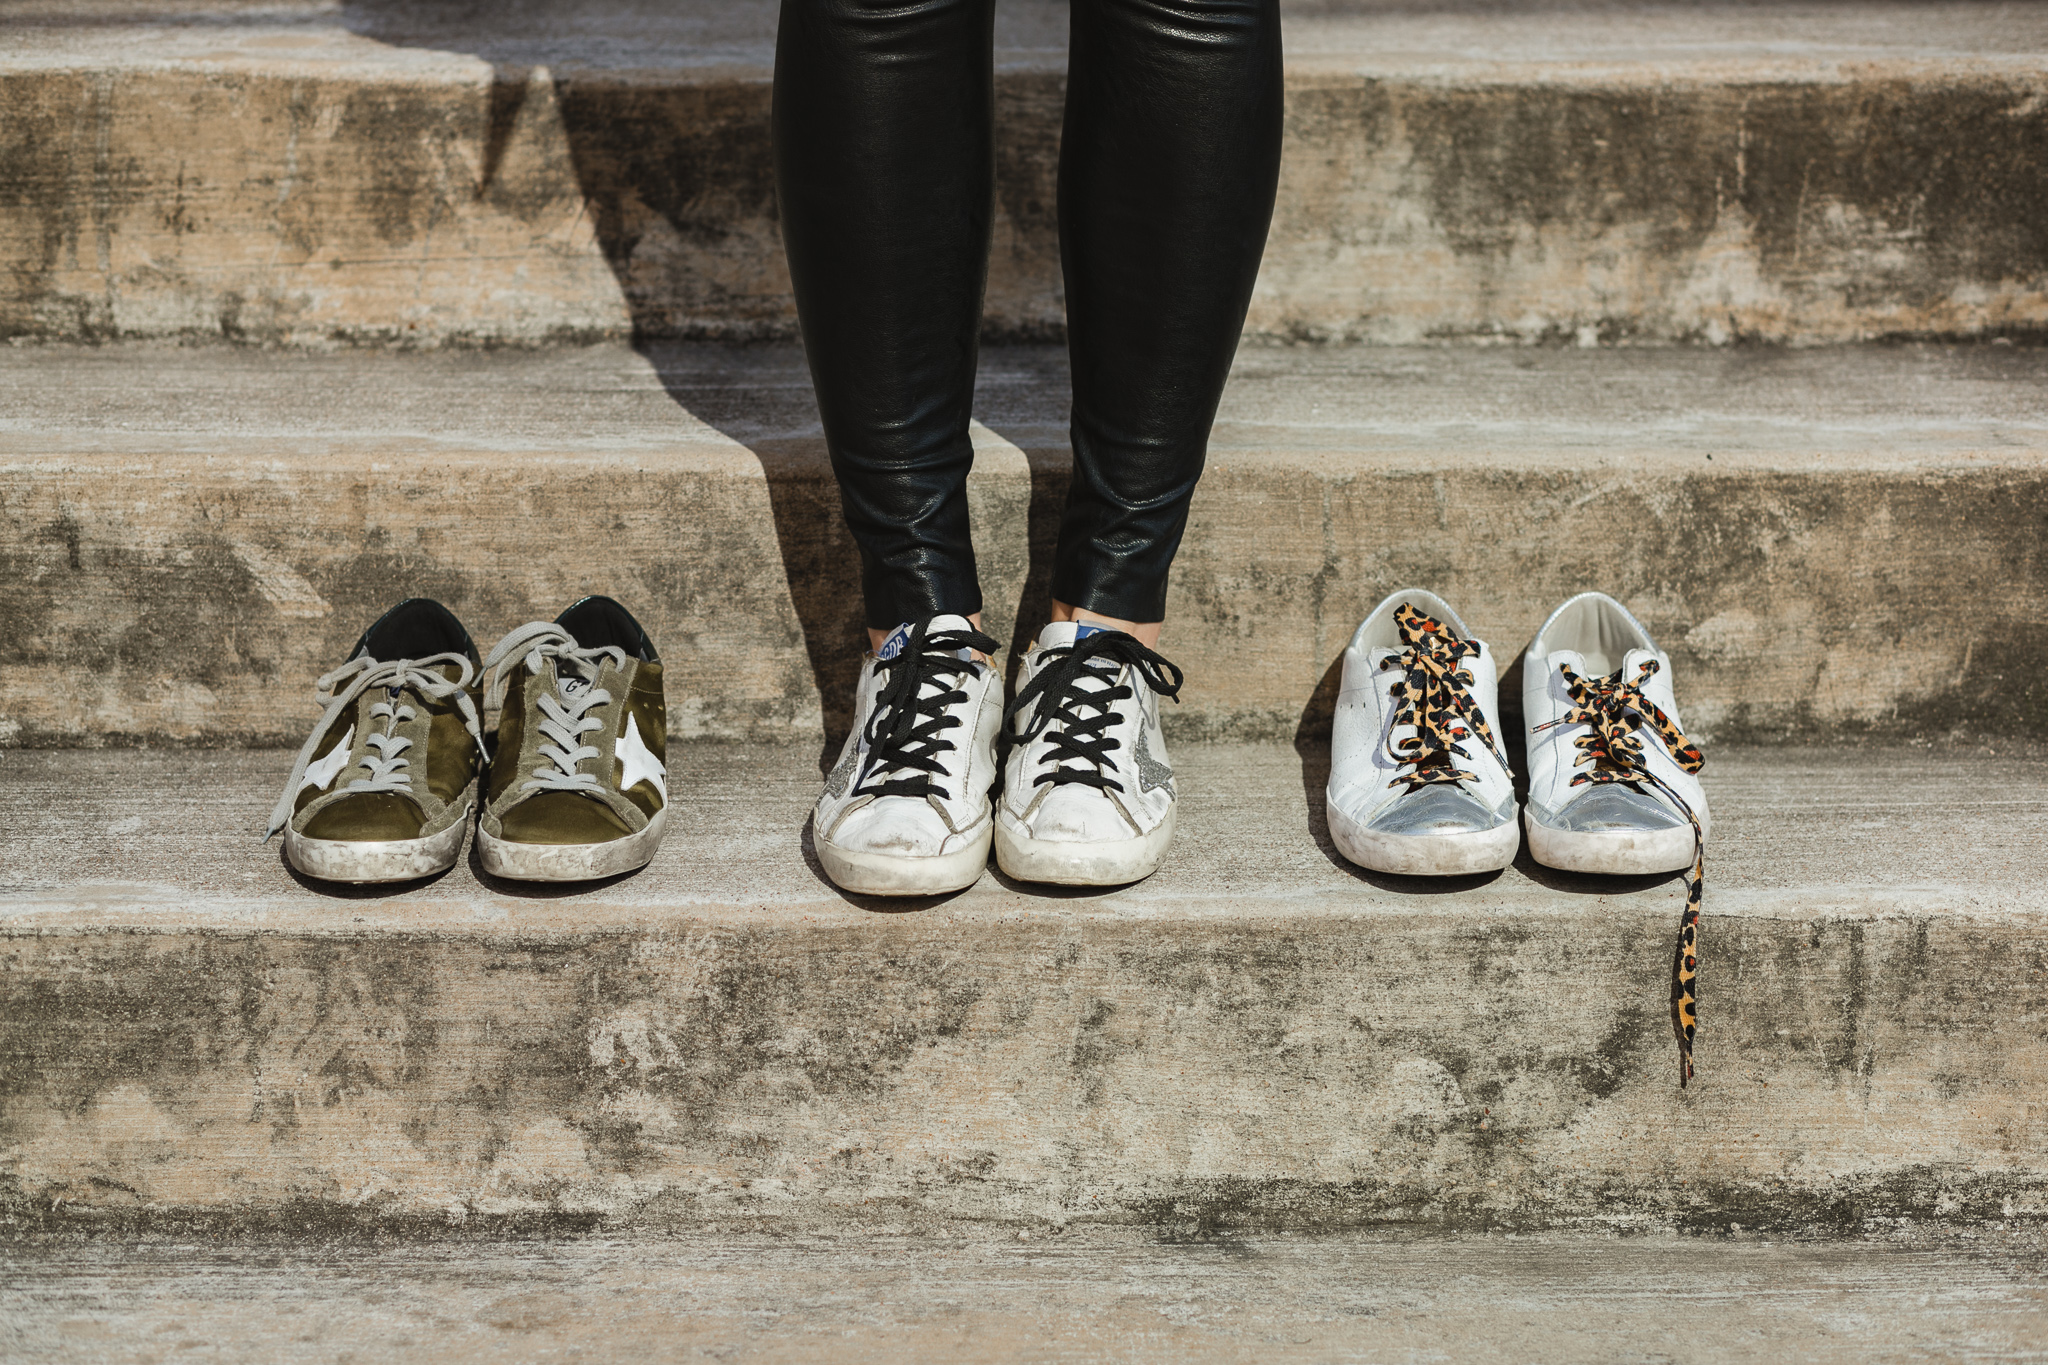 e99c1fb8a3bbe Why Golden Goose Sneakers are Worth the Money | KERRently by Courtney Kerr